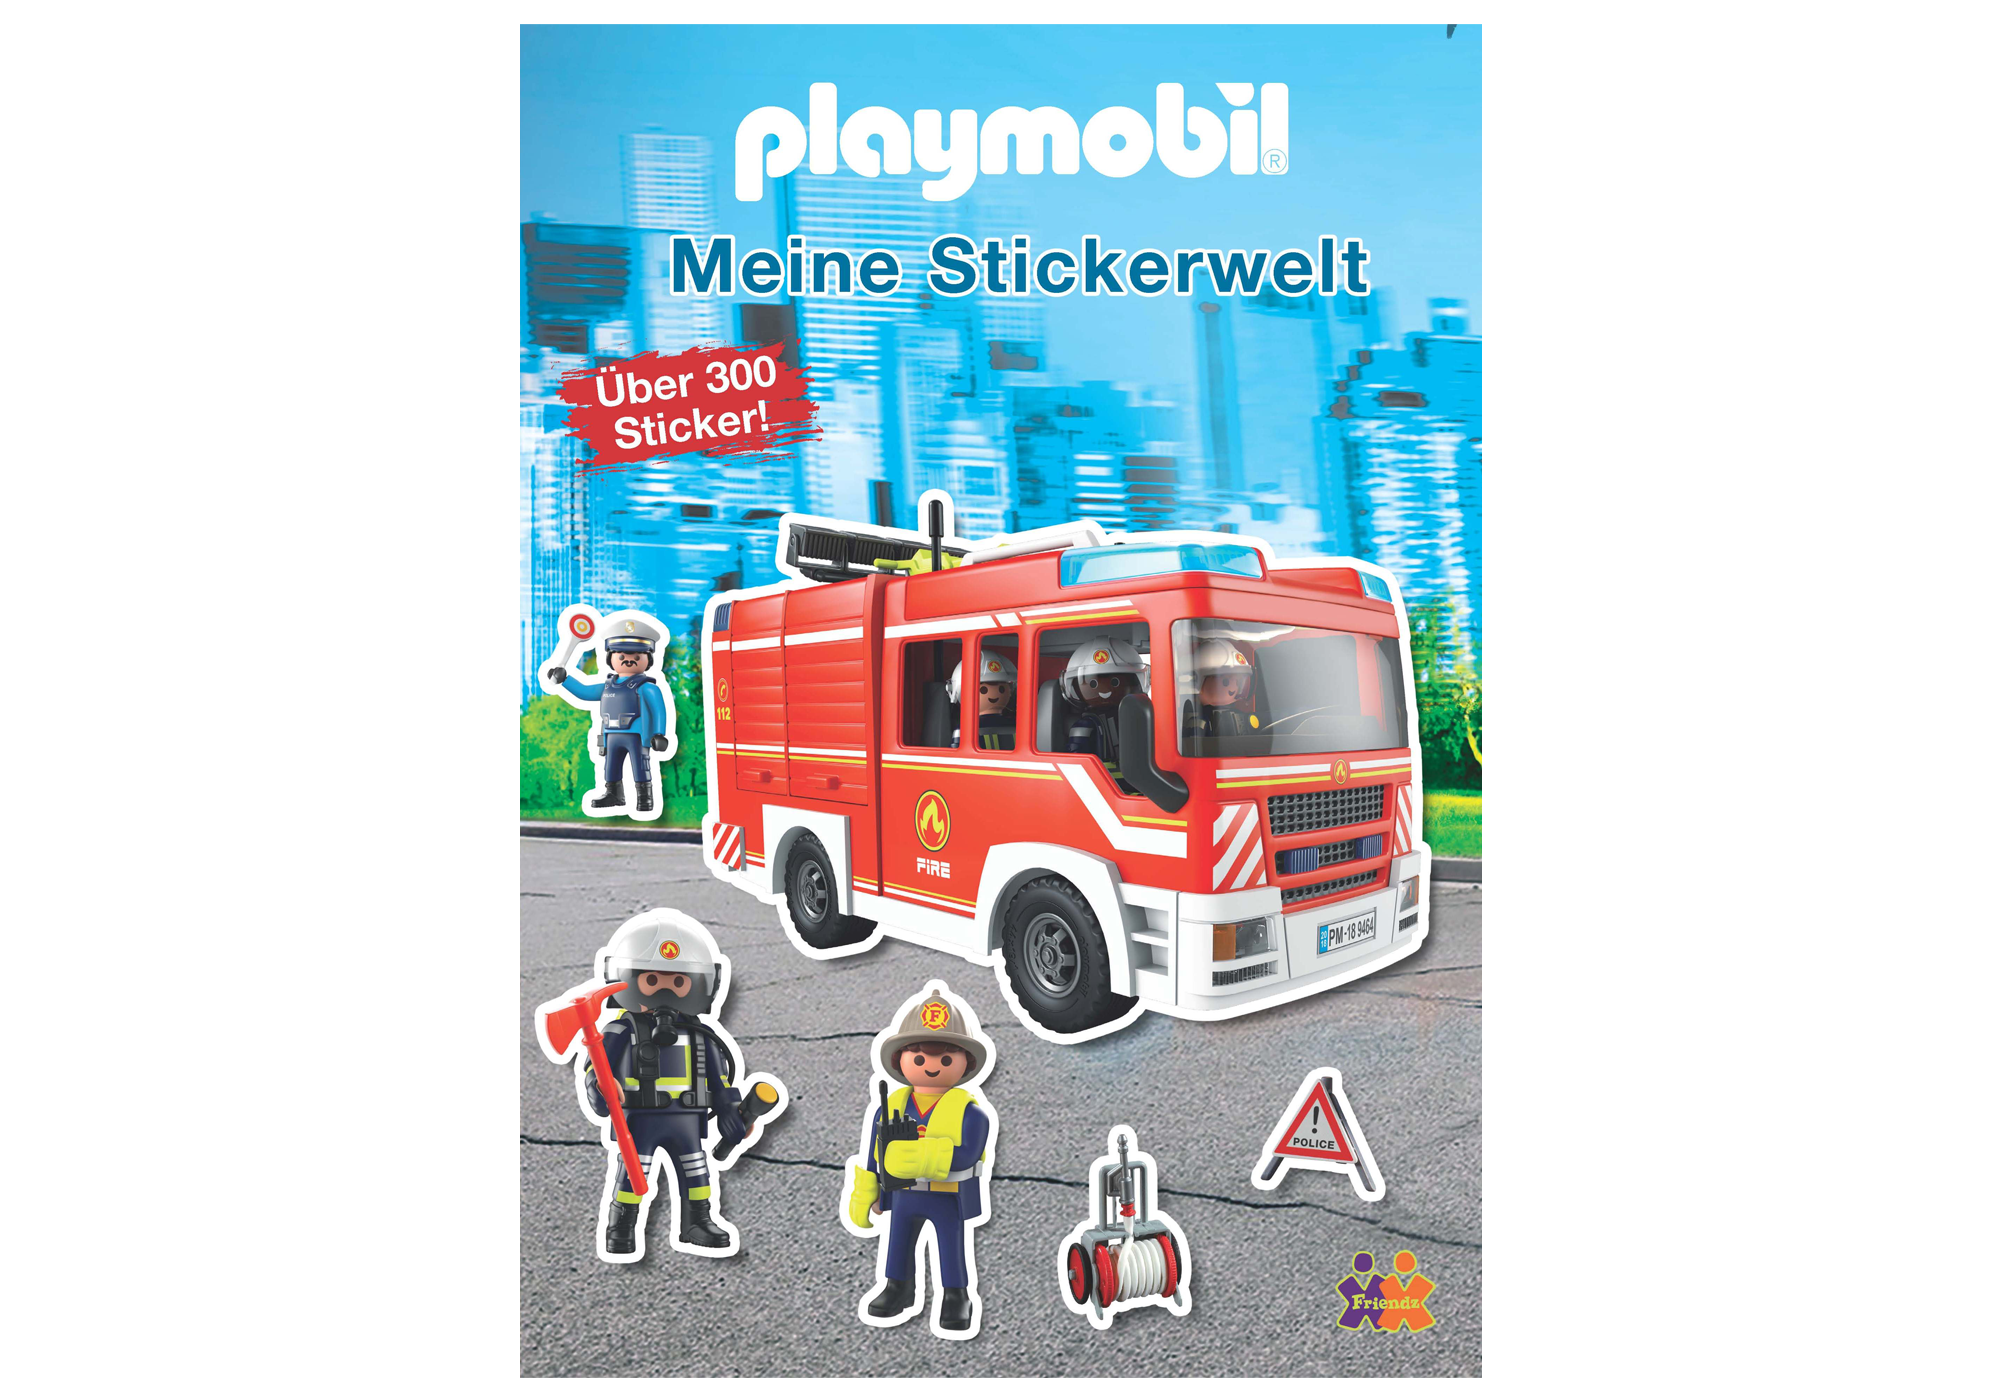 http://media.playmobil.com/i/playmobil/80091_product_detail